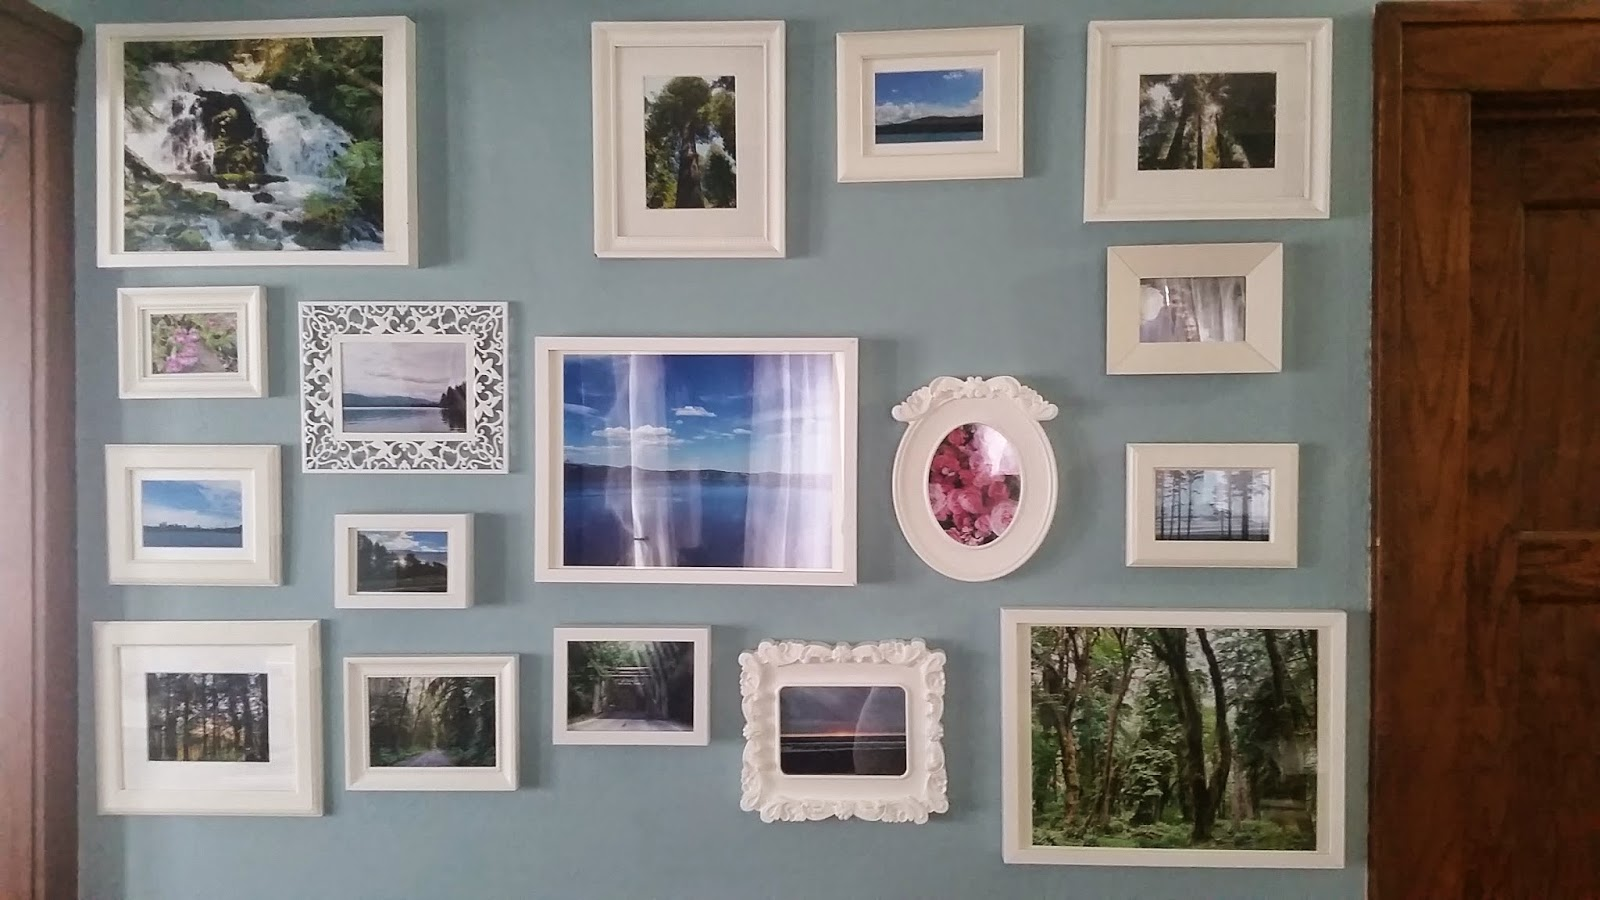 Crafty Homestead: Putting Up A Gallery Wall